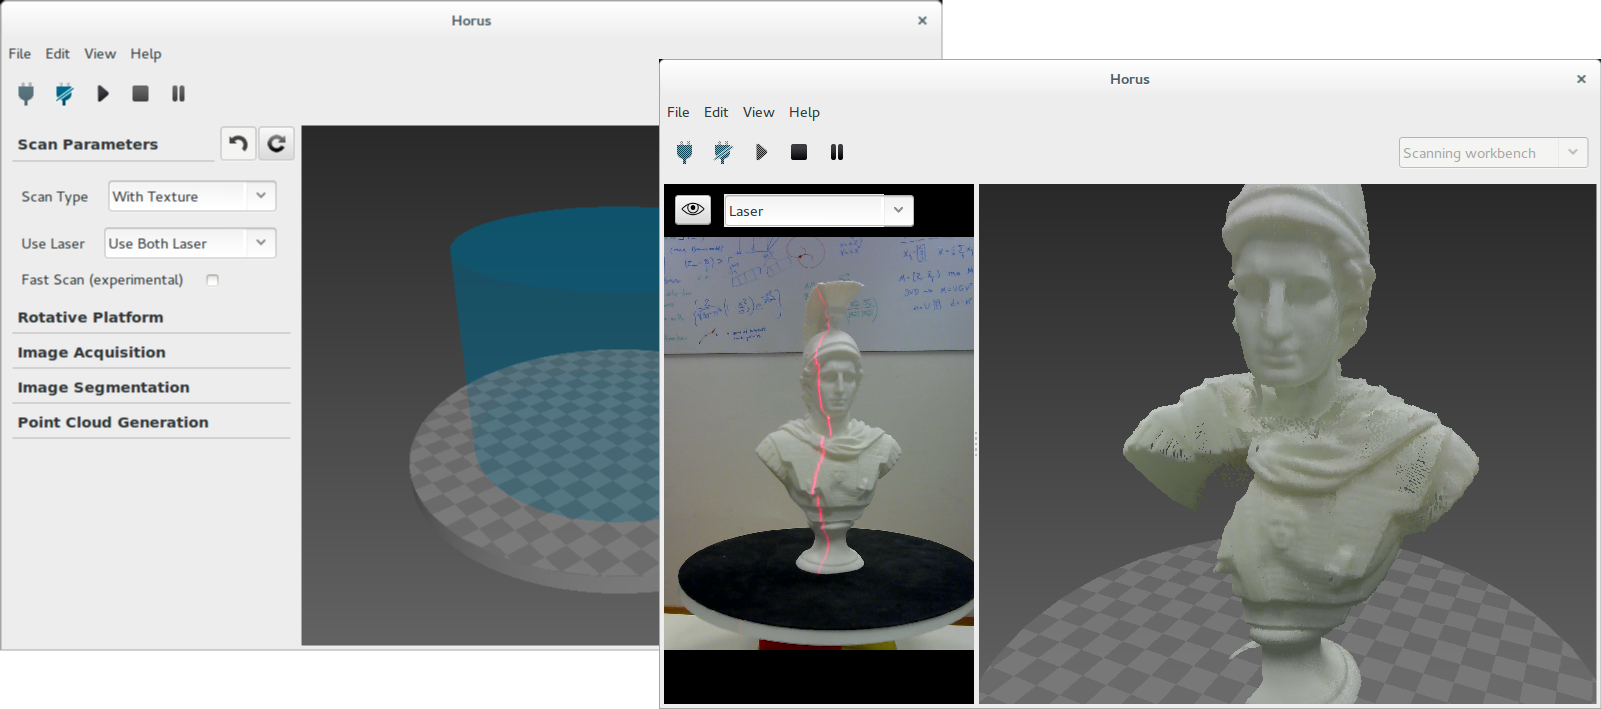 Horus 3d scanning software screen 01